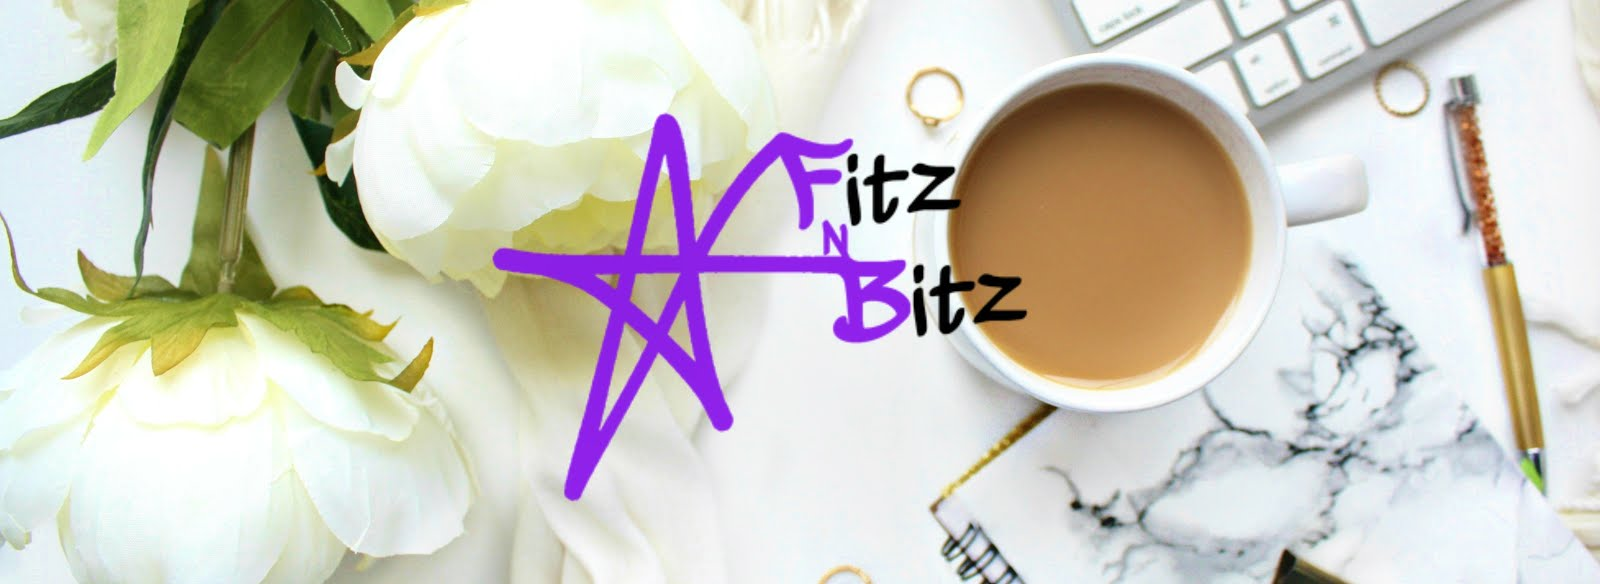 Fitz N Bitz - Irish Beauty Blog ★